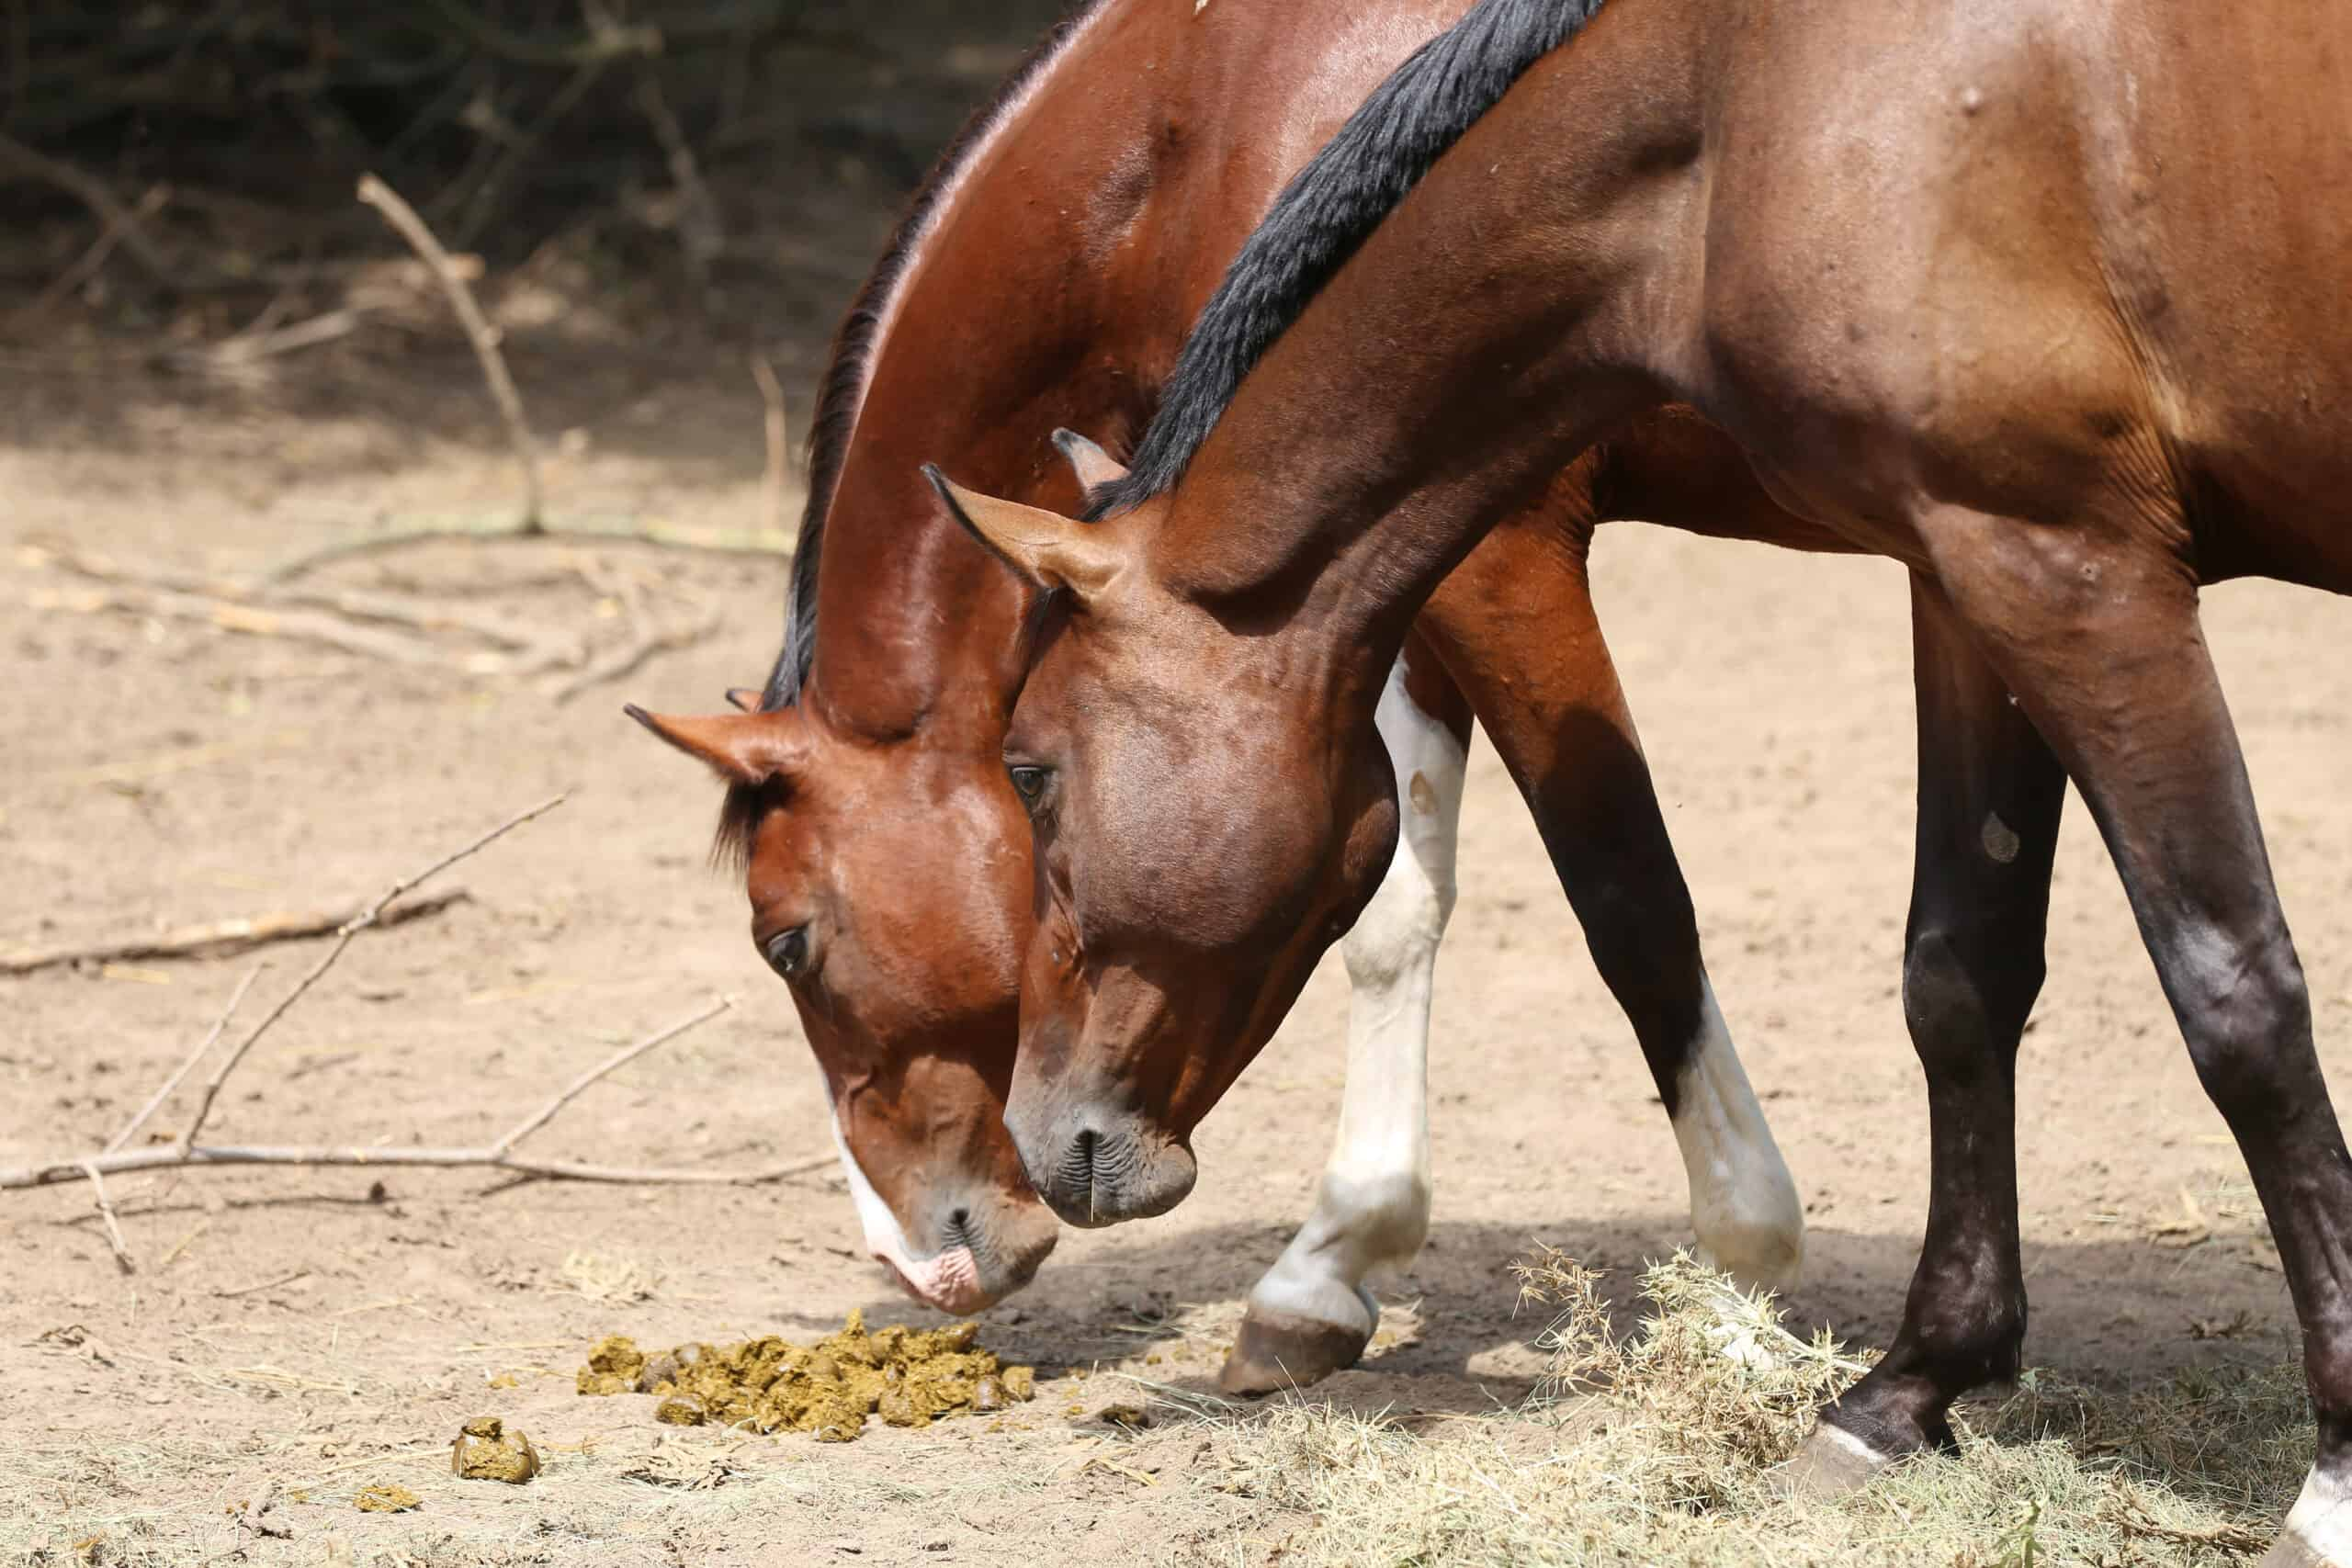 why do horses eat feces?